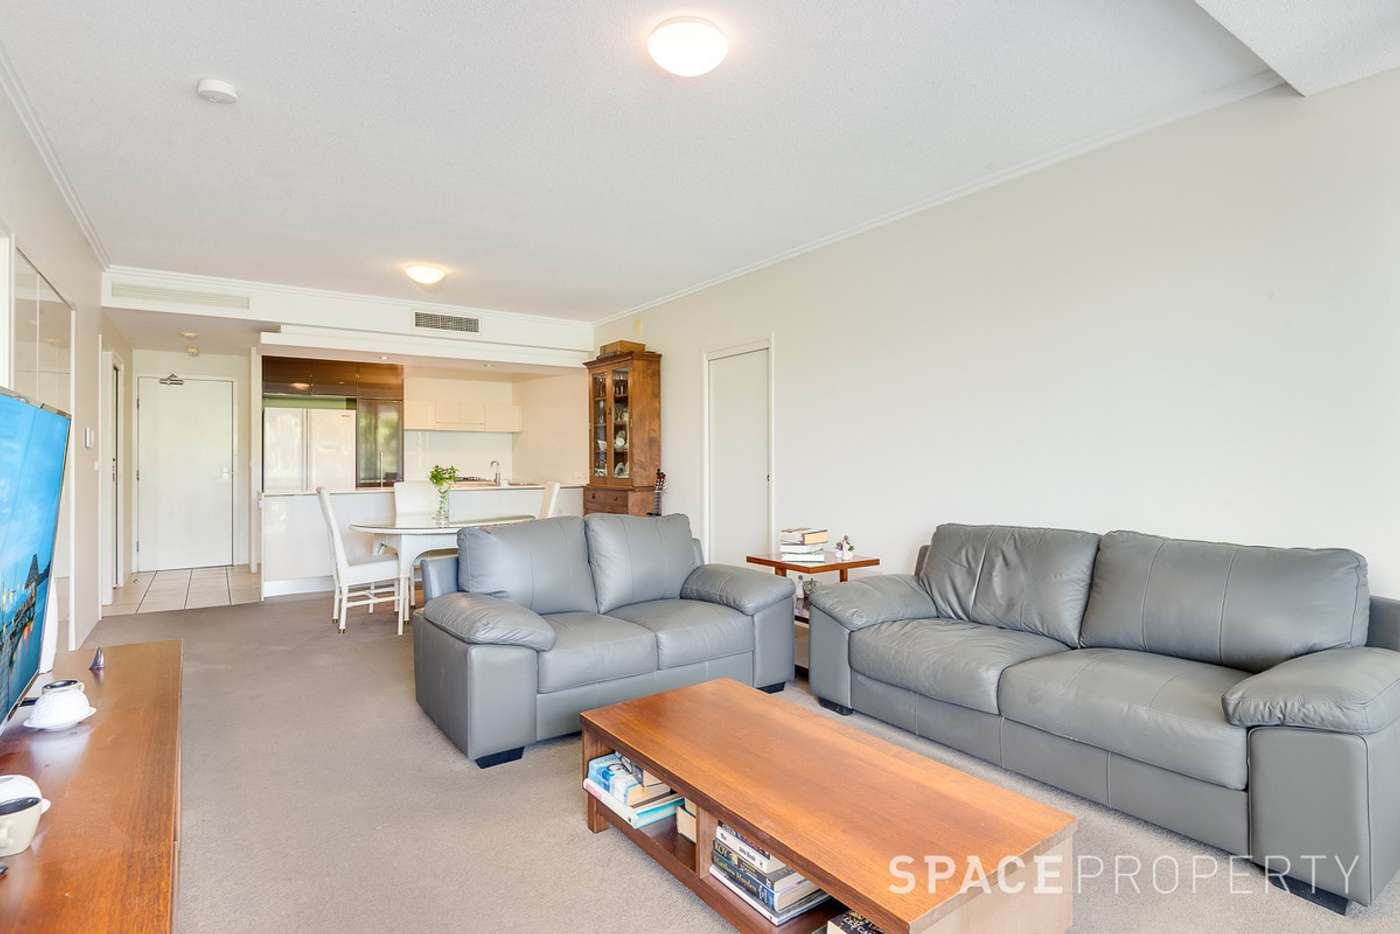 Fifth view of Homely apartment listing, 7088/7 Parkland Boulevard, Brisbane City QLD 4000